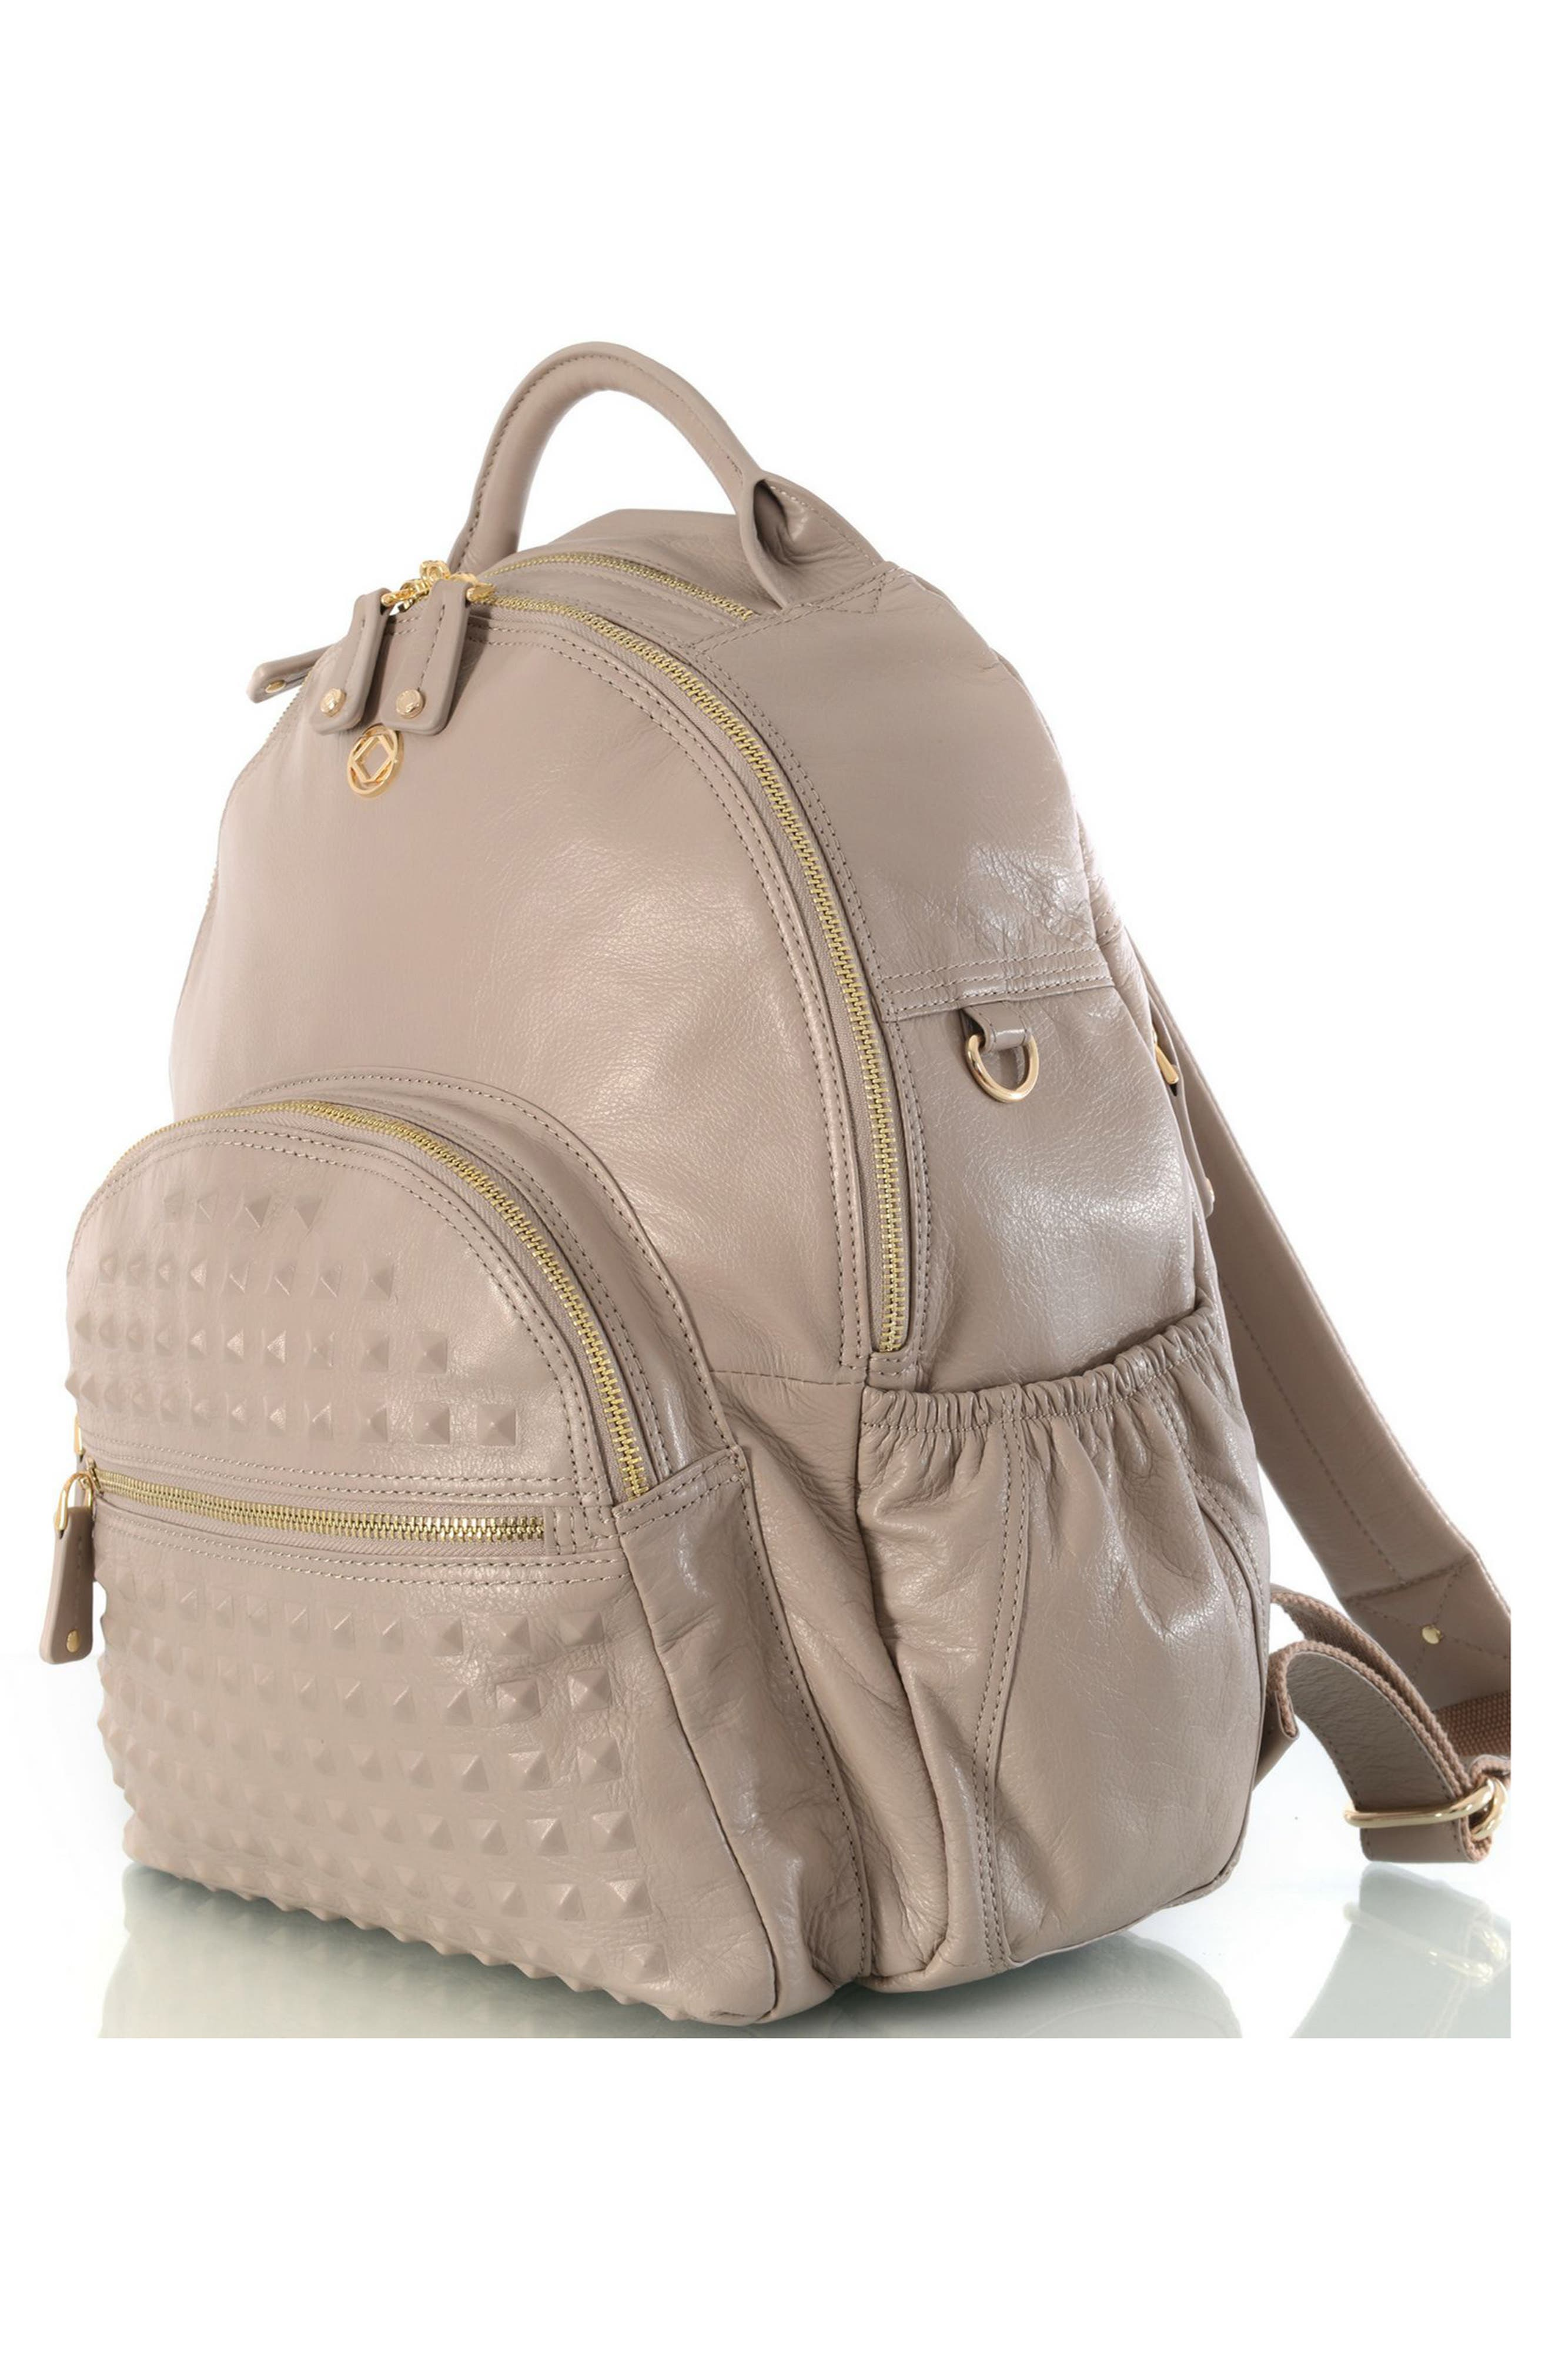 Joy Studded Diaper Backpack,                             Alternate thumbnail 4, color,                             TAUPE WITH GOLD HARWARE